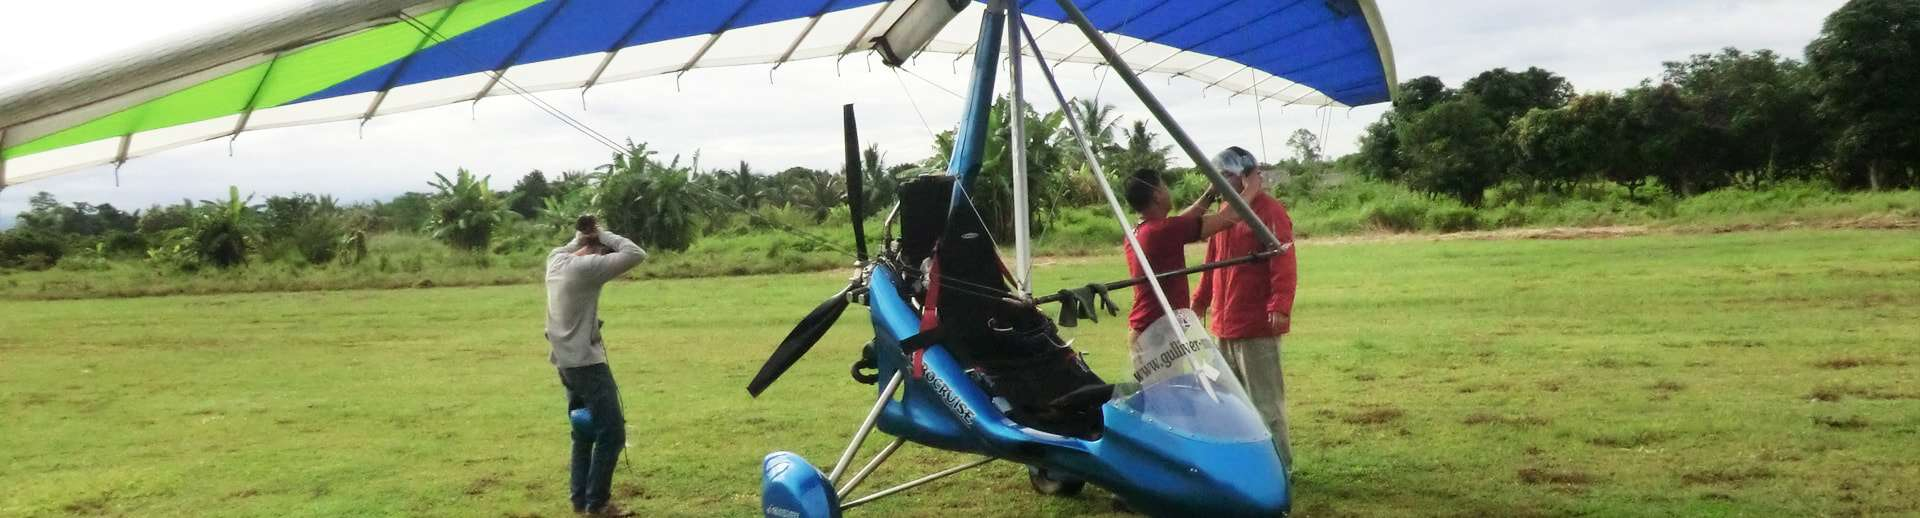 flying a microlight for 15 minutes over chiang mai